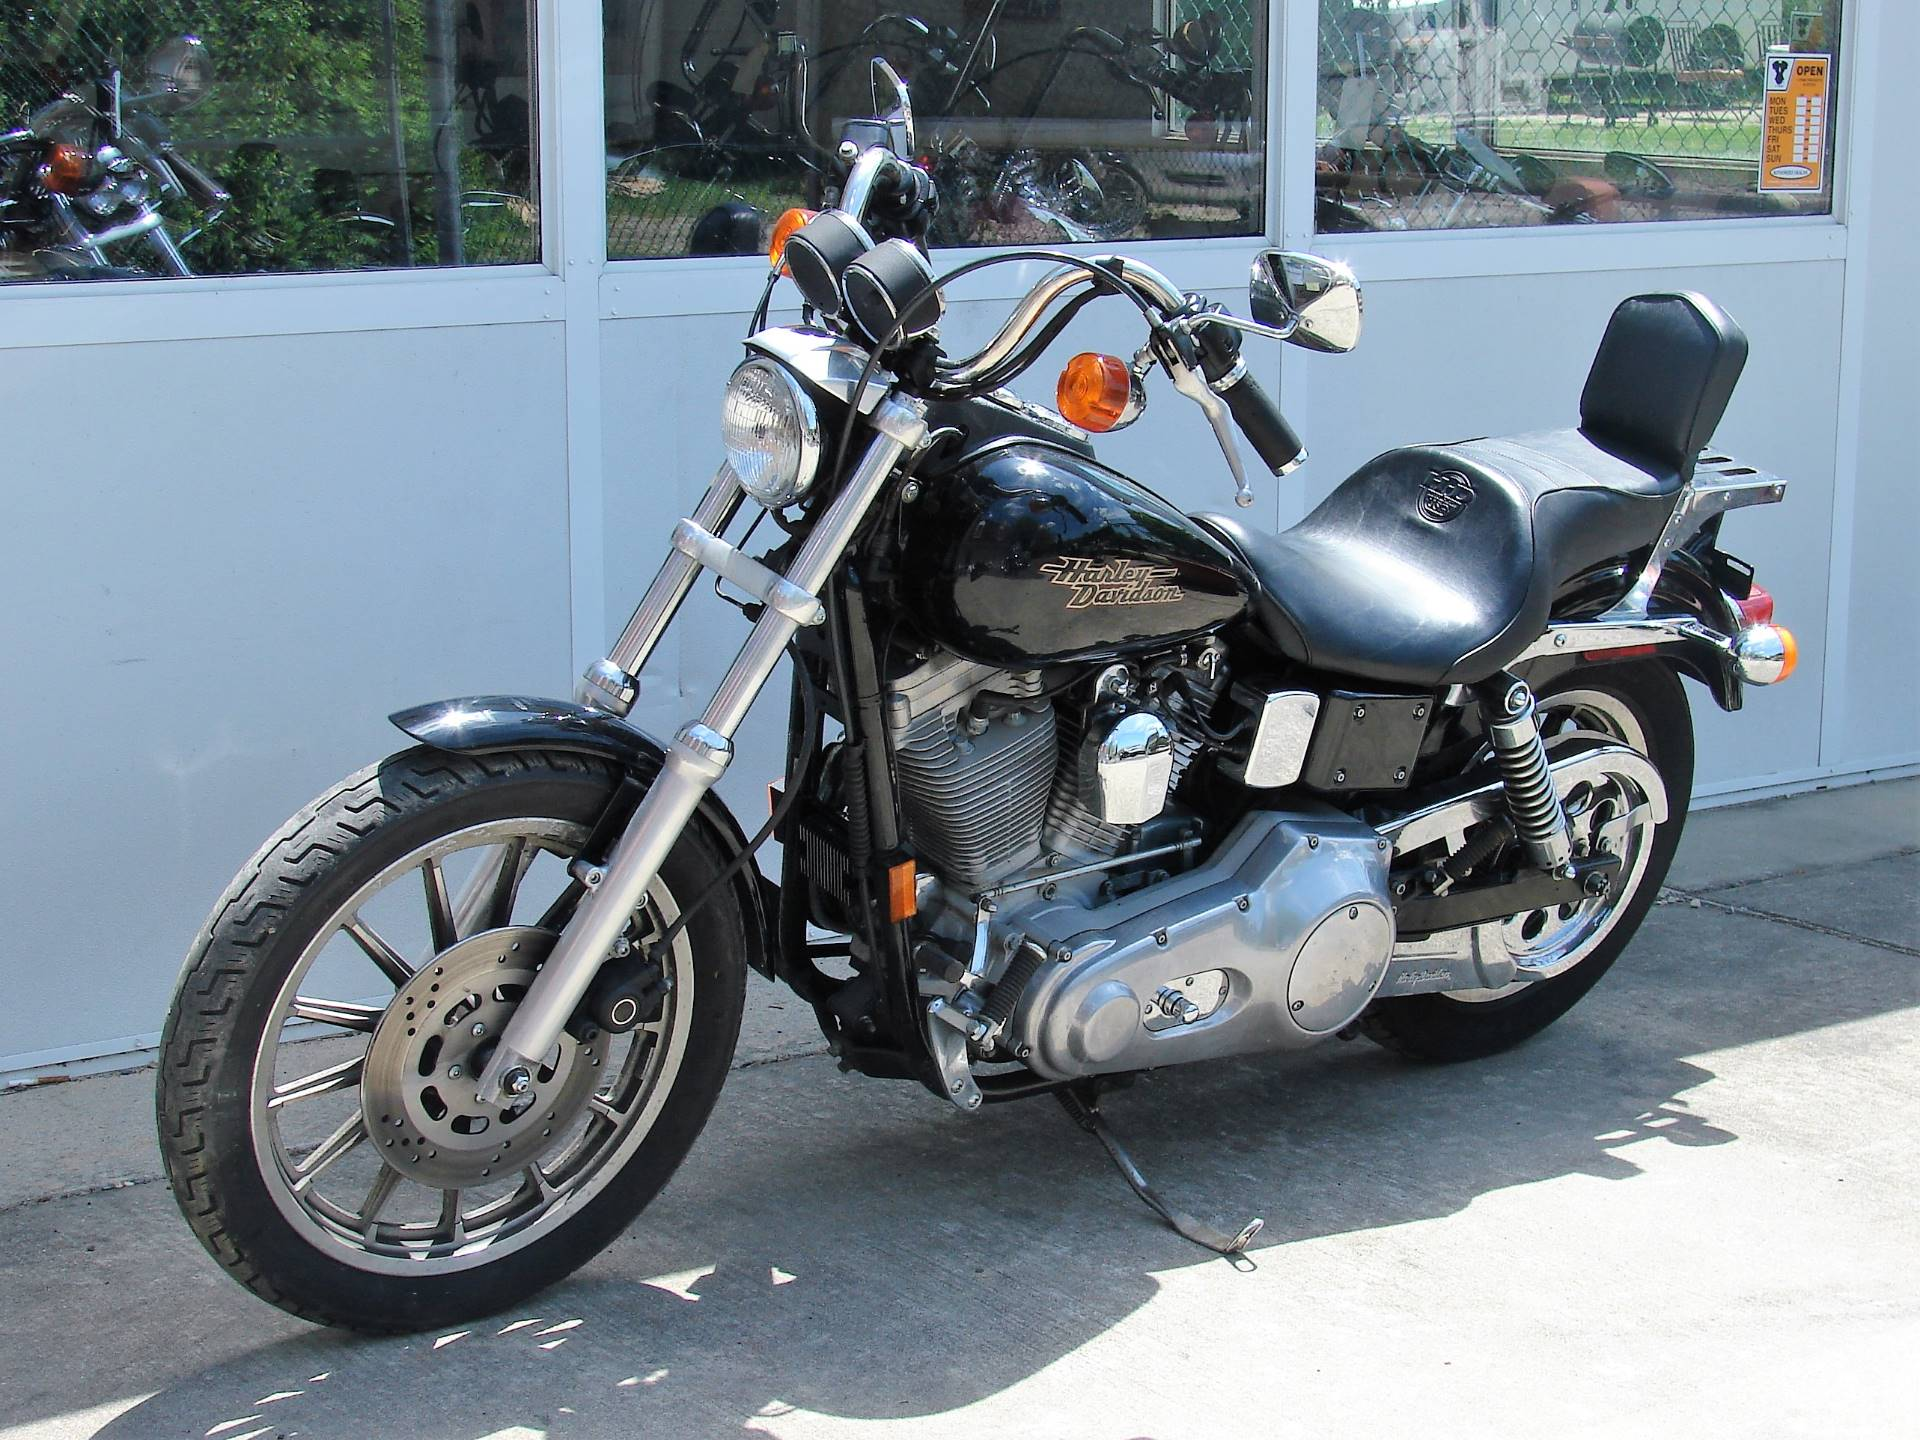 1998 Harley-Davidson Dyna Super Glide  (Black)  w/ Low Miles! in Williamstown, New Jersey - Photo 9